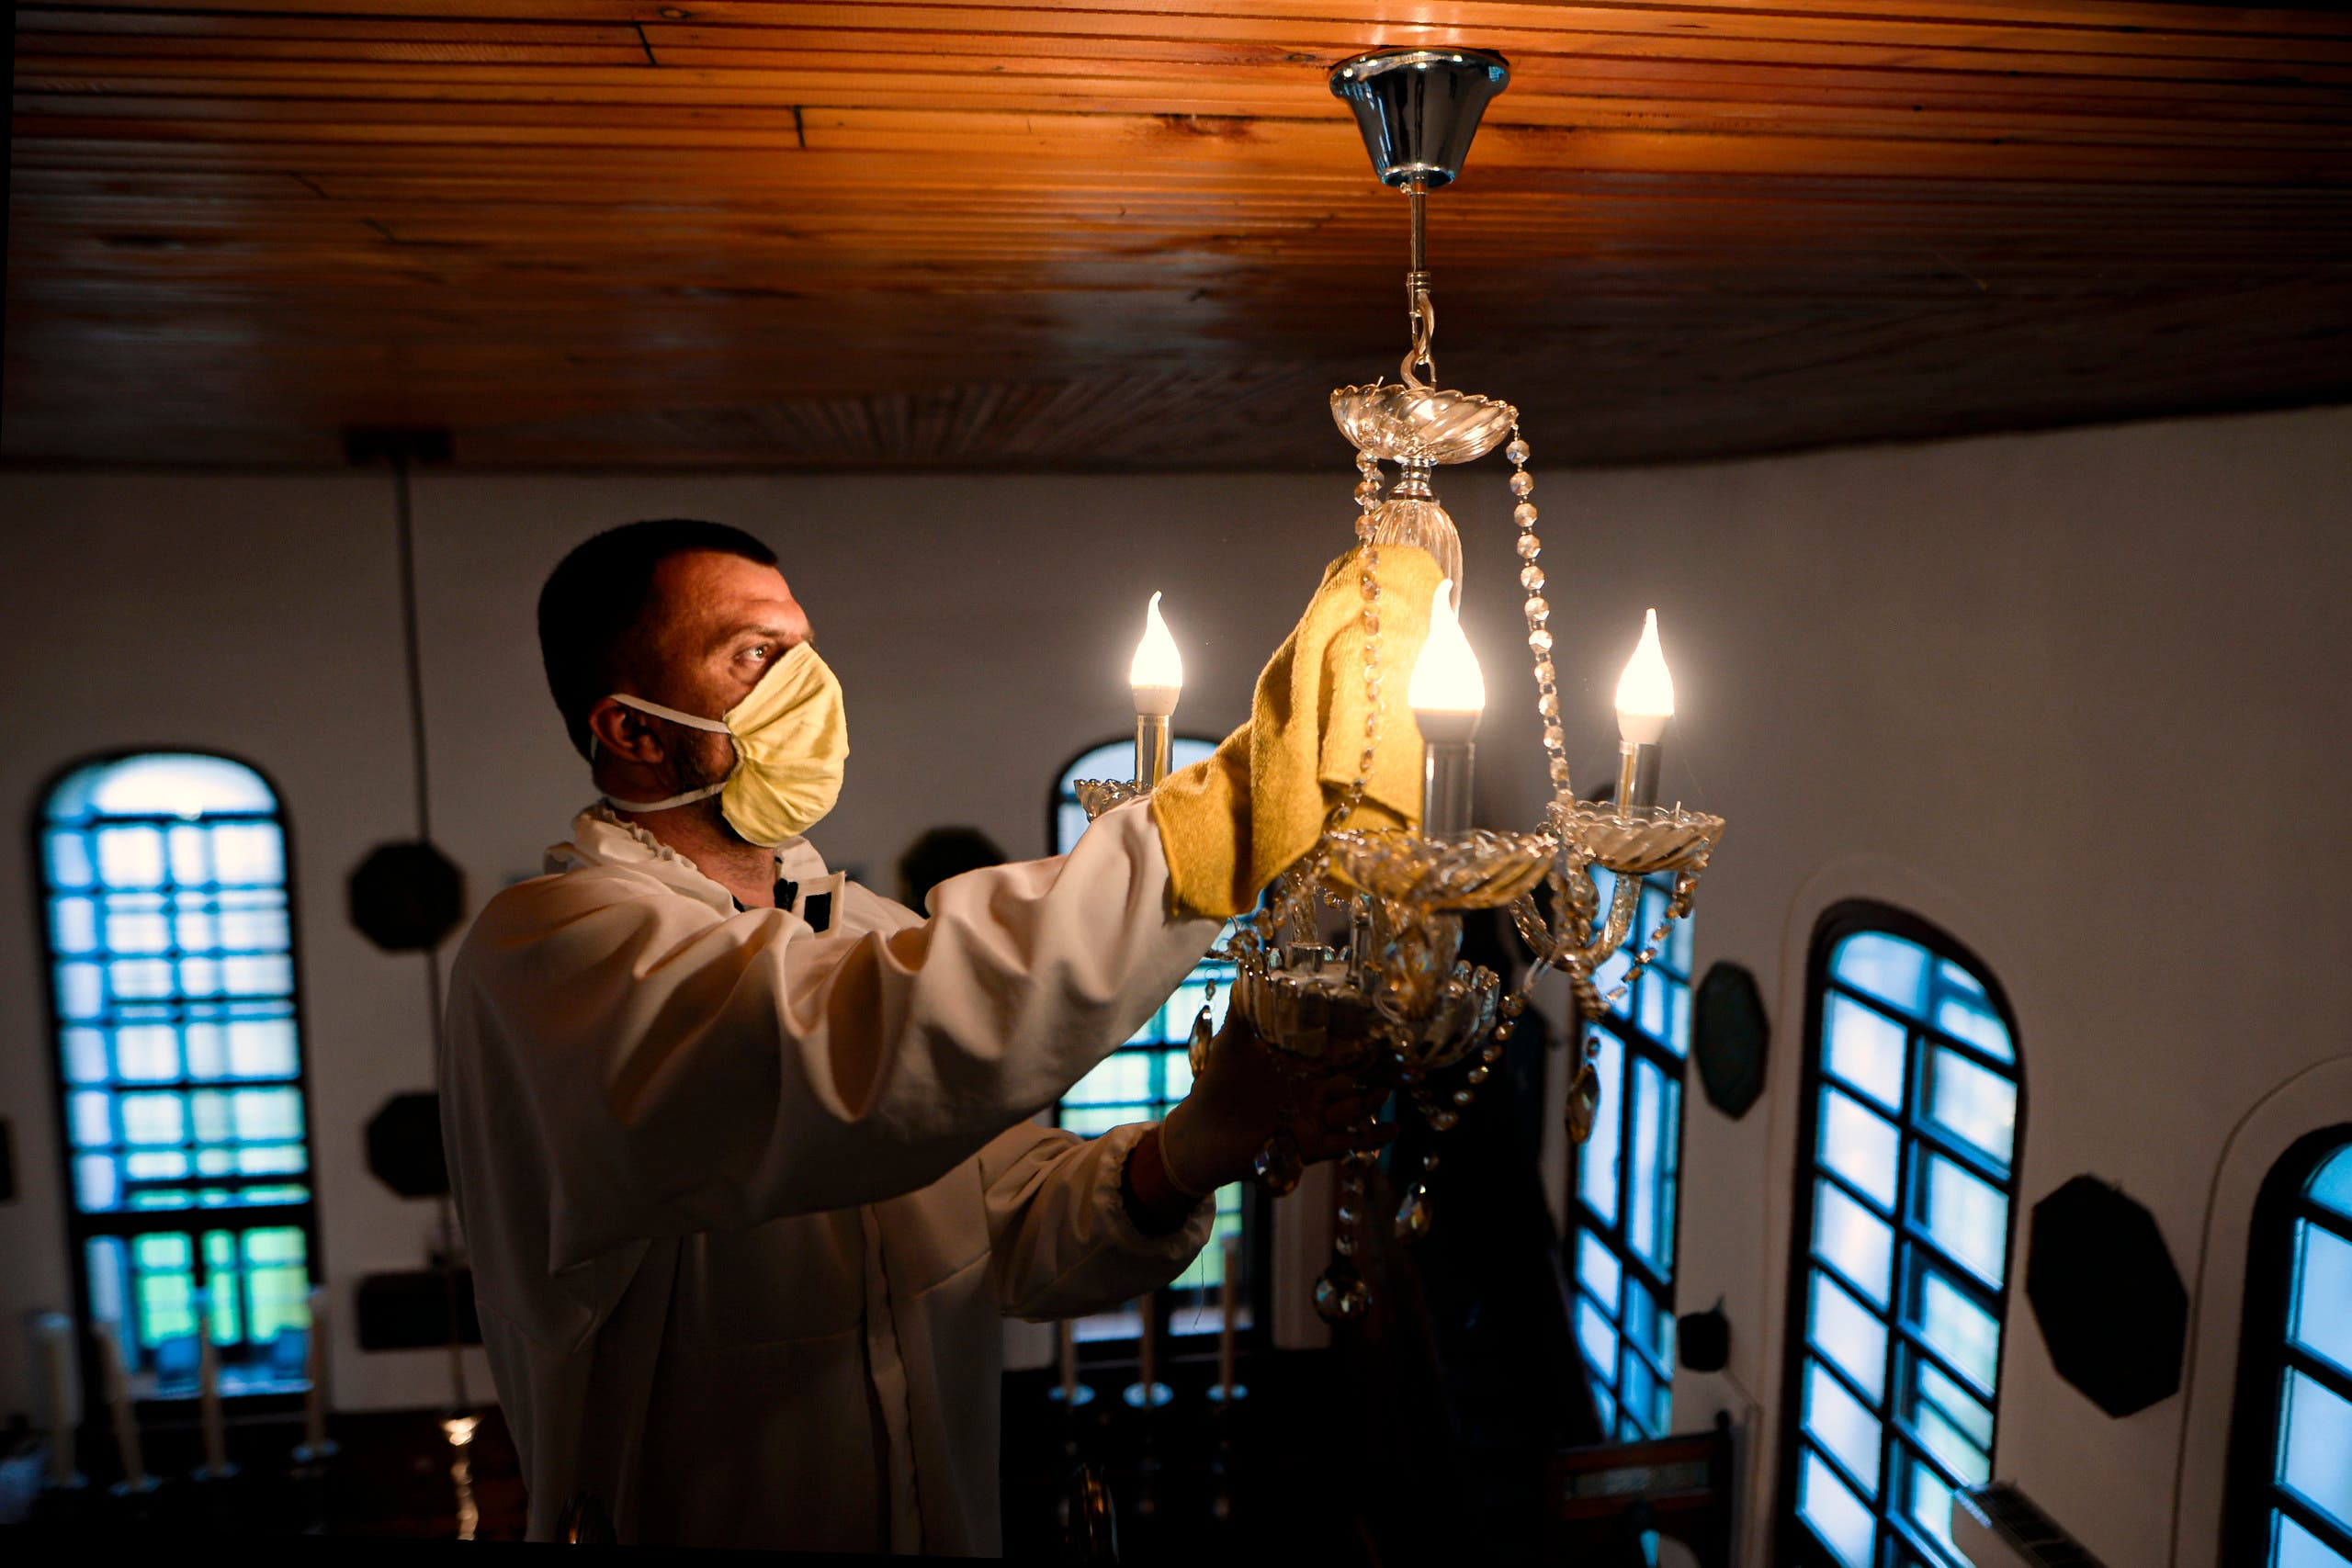 A man disinfects the ceiling lamp in the Cobanija mosque in Sarajevo, Bosnia, on Tuesday, April 21, 2020.  (AP)